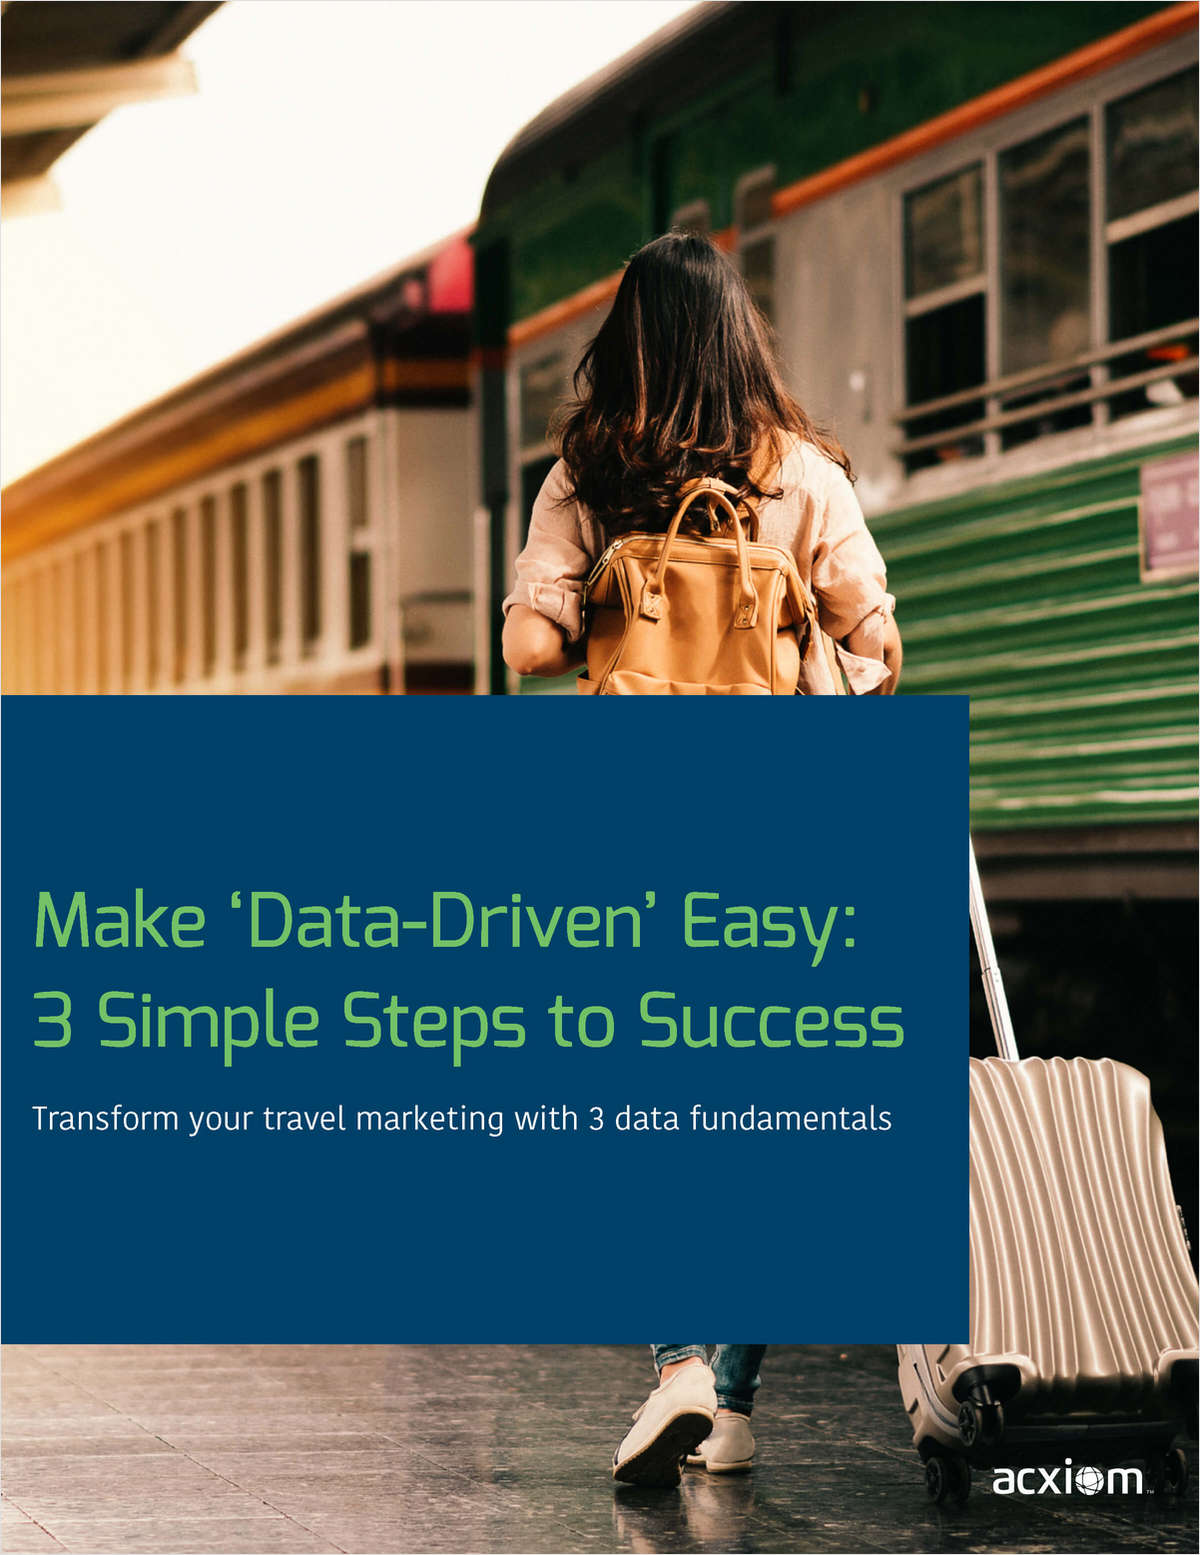 Make 'Data-Driven' Easy: 3 Simple Steps to Success